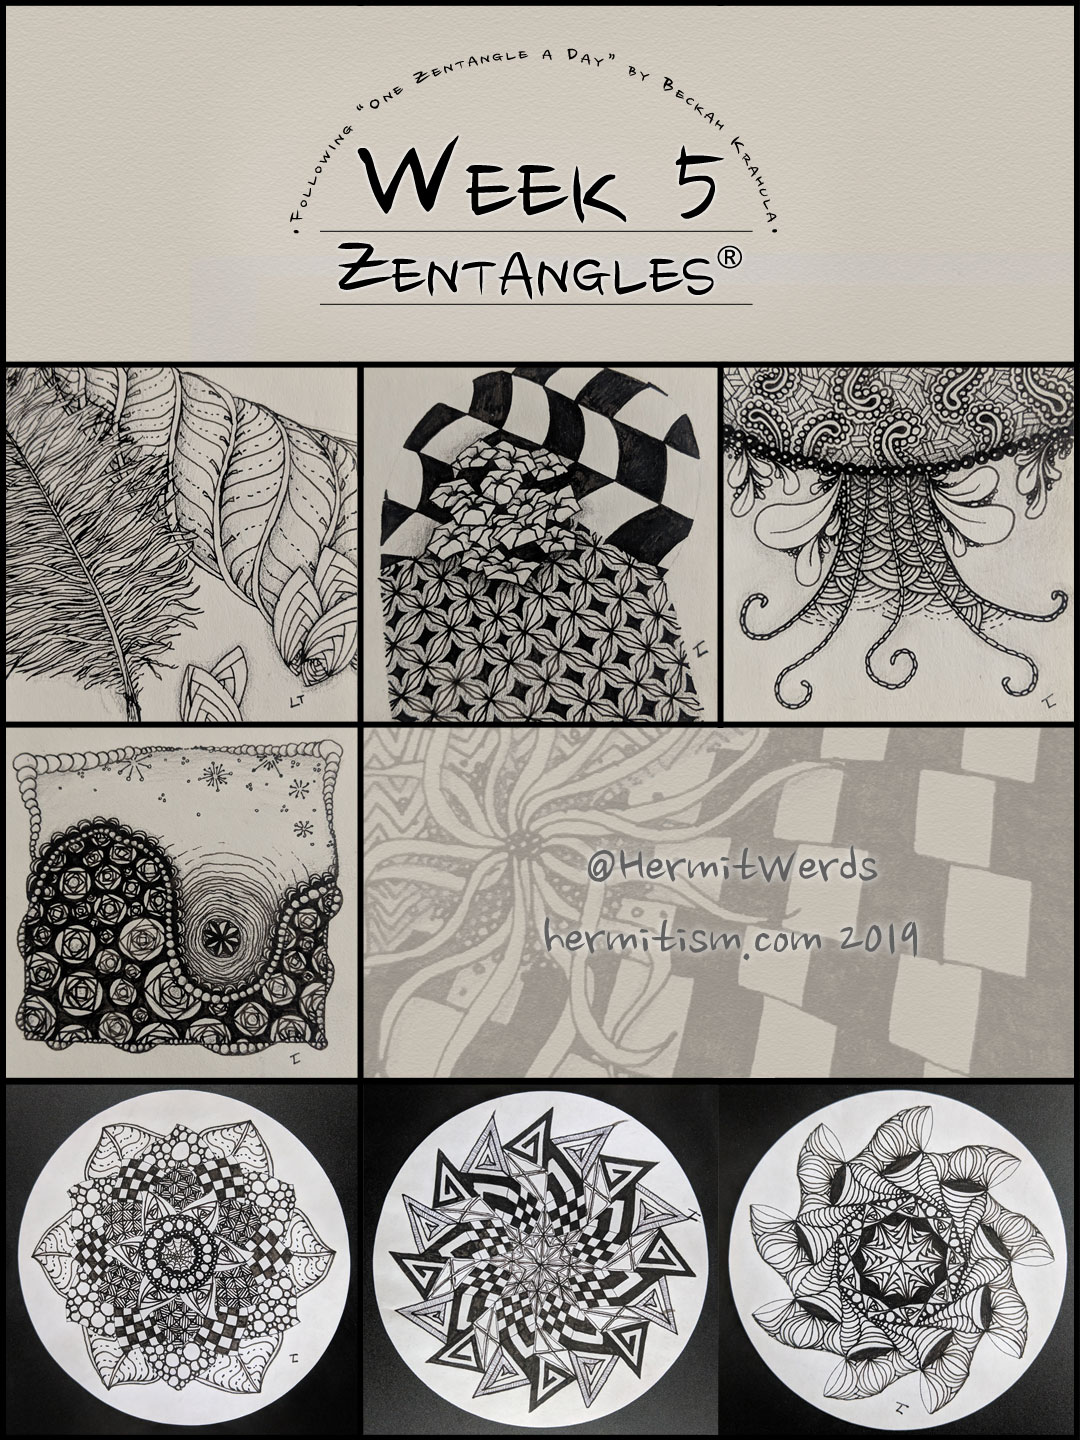 Week 5 Zentangles by Hermit Werds for Pinterest